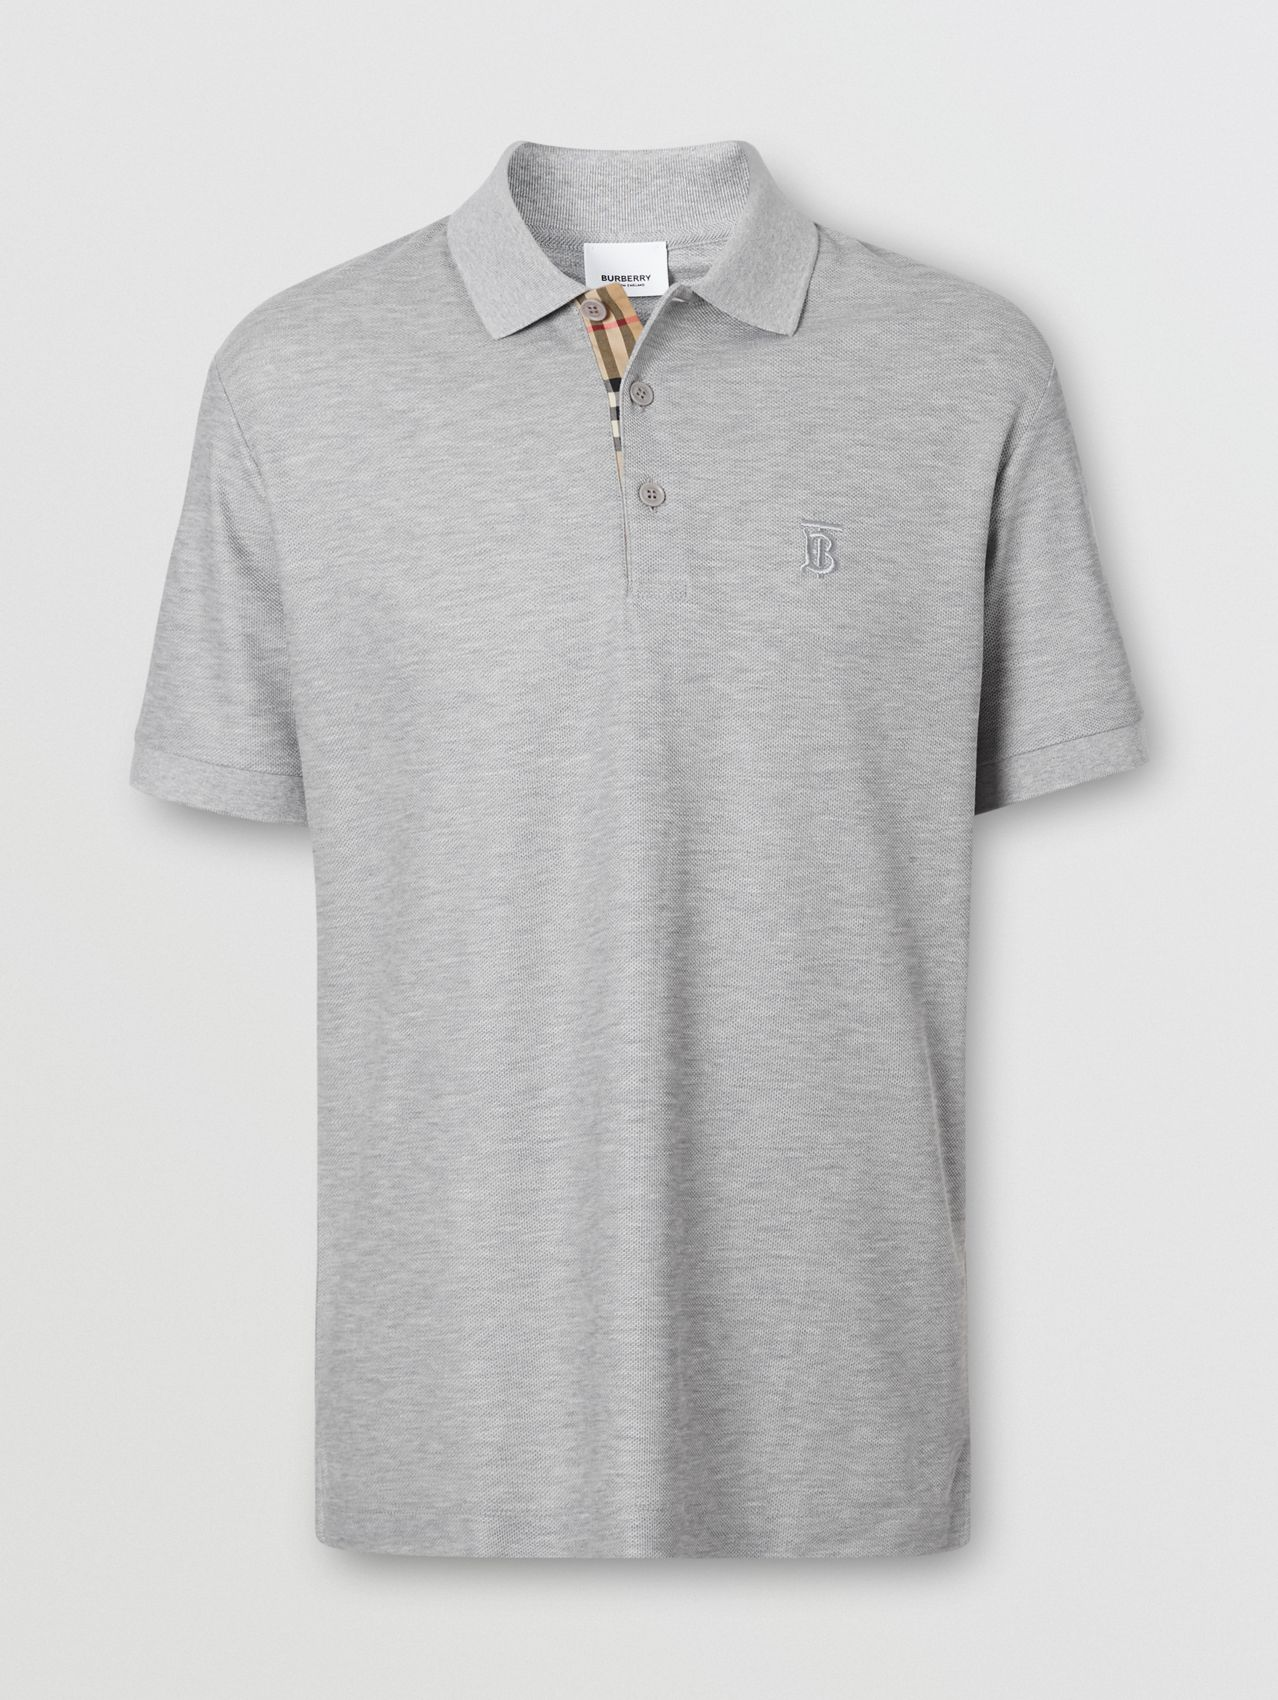 Monogram Motif Cotton Piqué Polo Shirt# in Pale Grey Melange